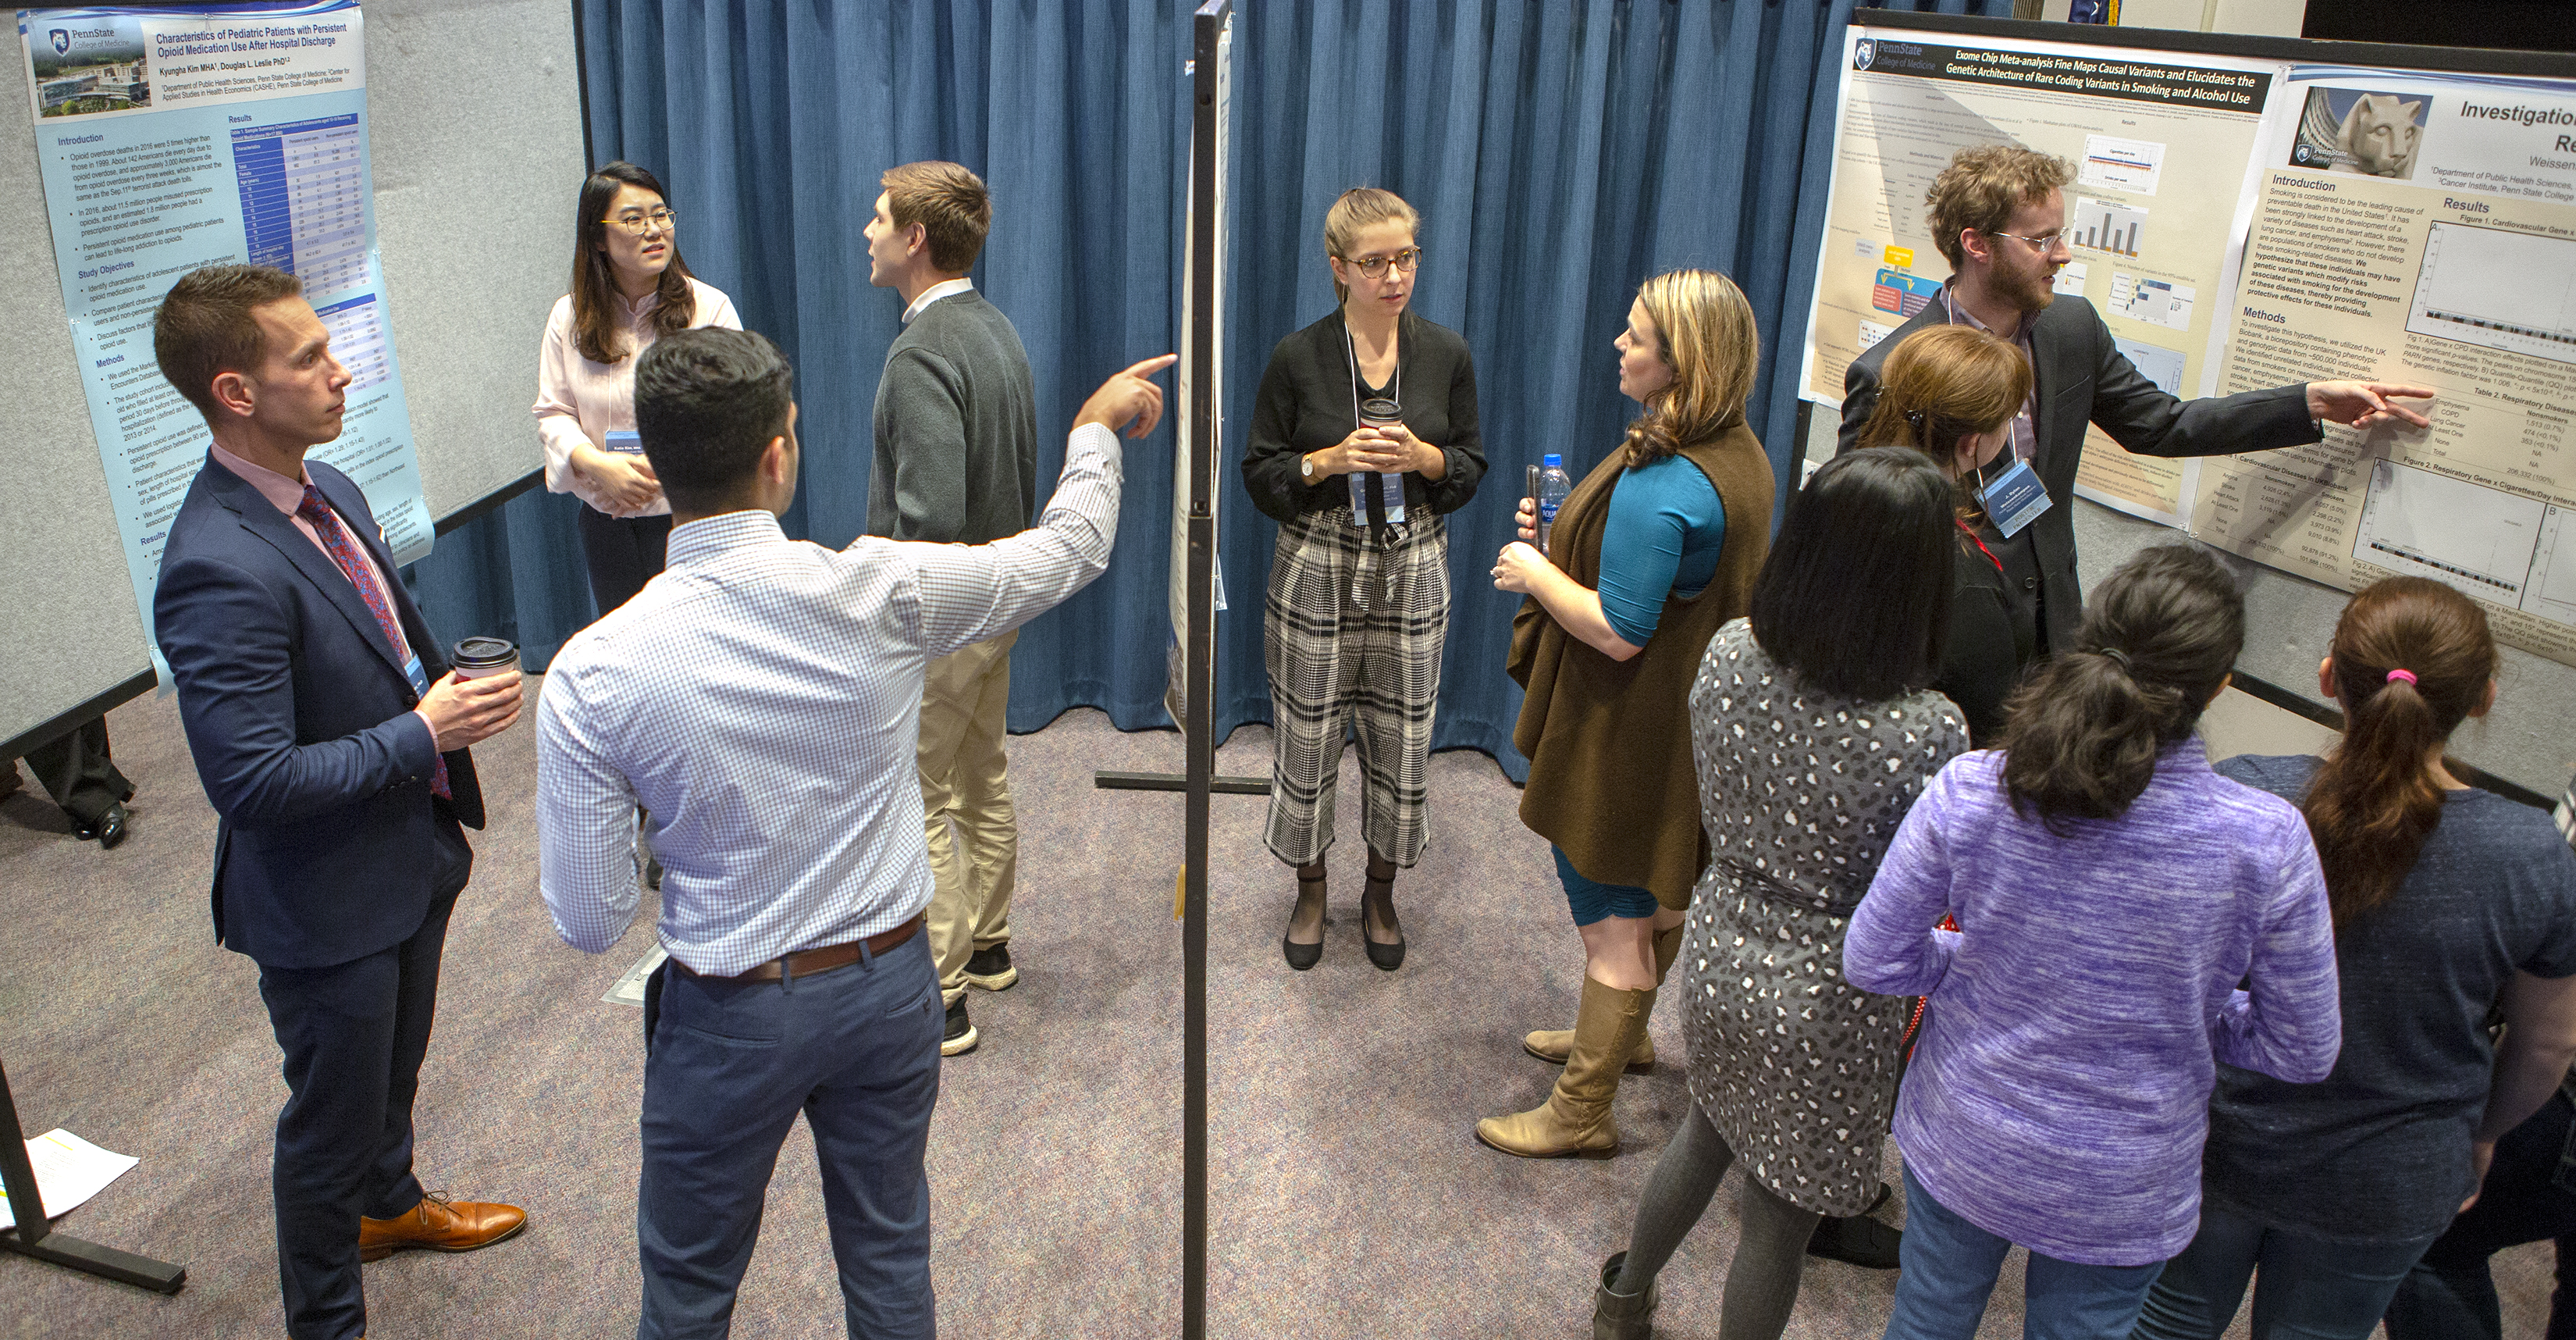 A room with three panels holding scientific posters is filled with men and women. They are pointing to the information on the posters and discussing the research in groups. A blue curtain forms the background of the room.